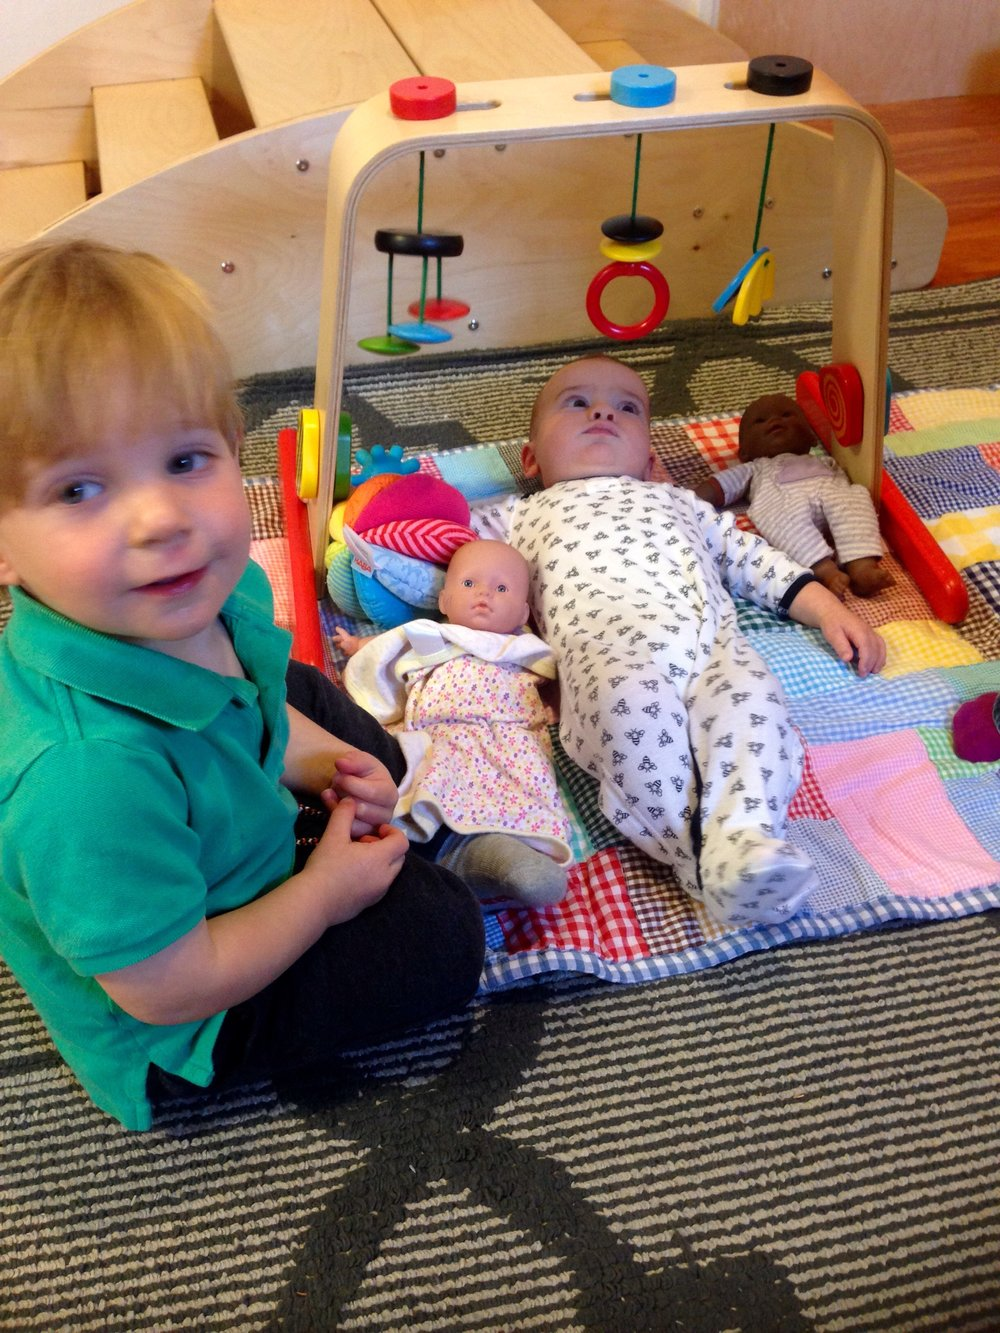 Baby with dolls in toddler room Nido Durham